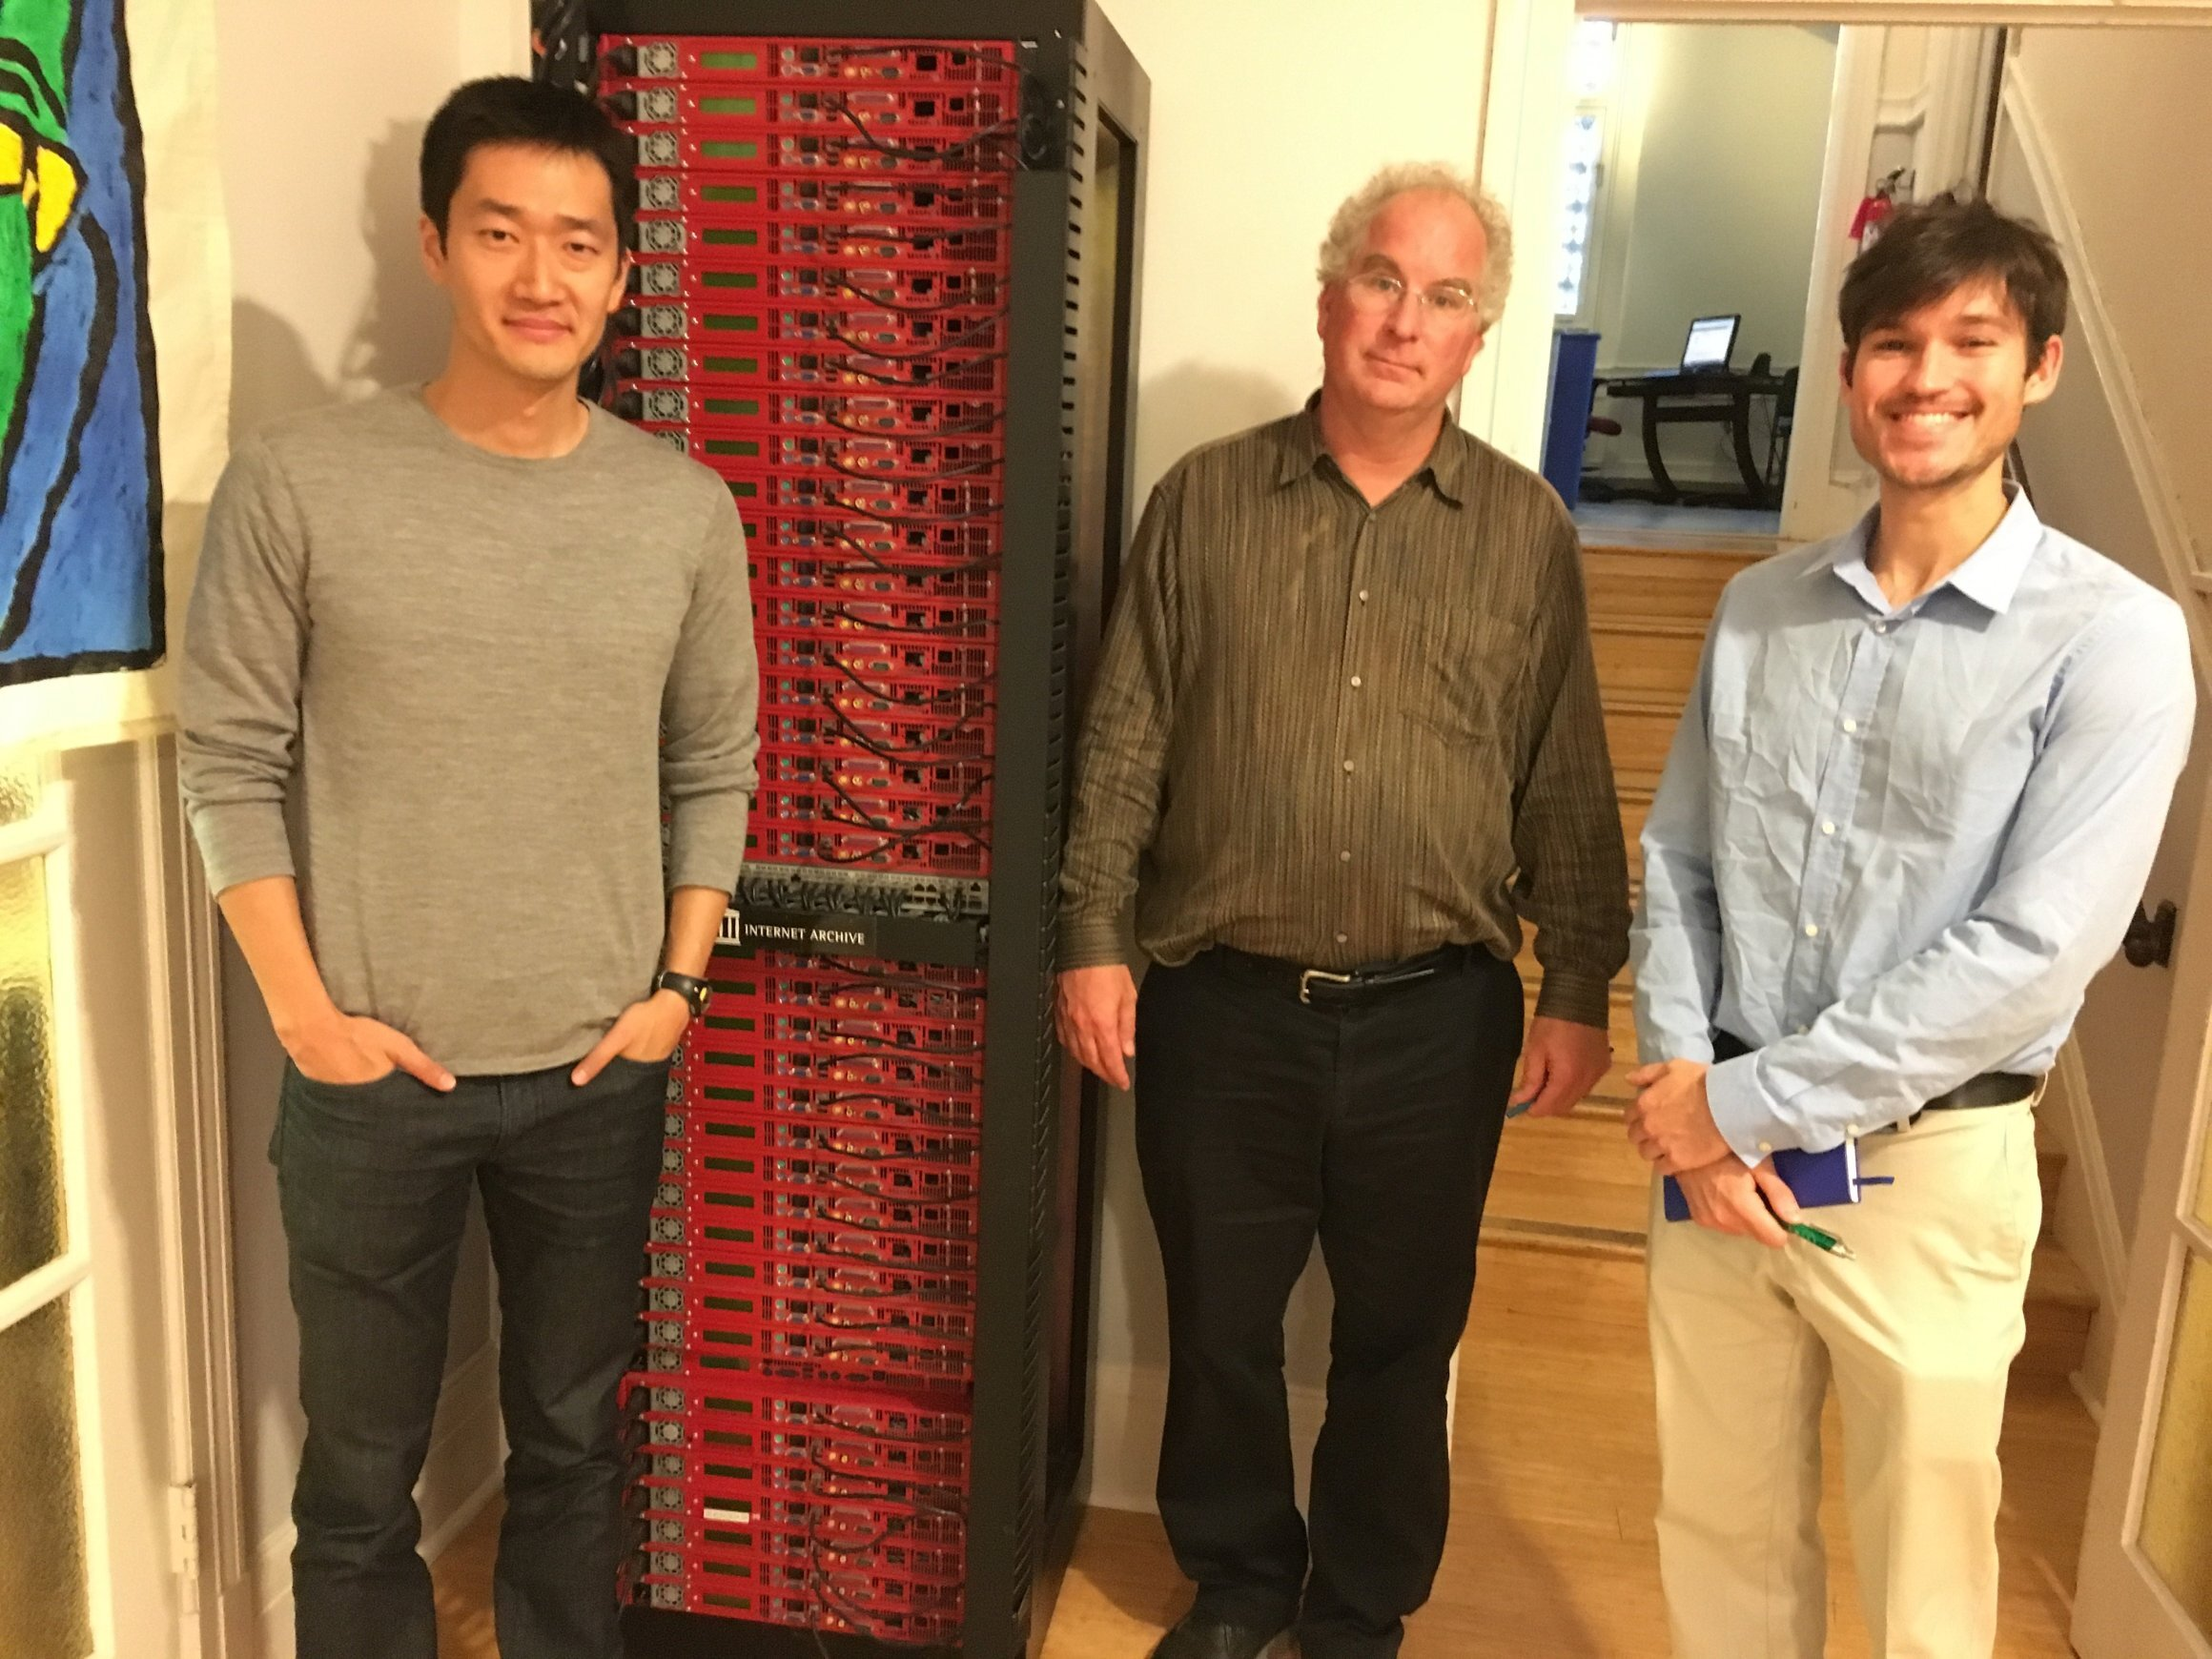 Catalog co-founders with the founder of the Internet Archive, Brewster Kahle